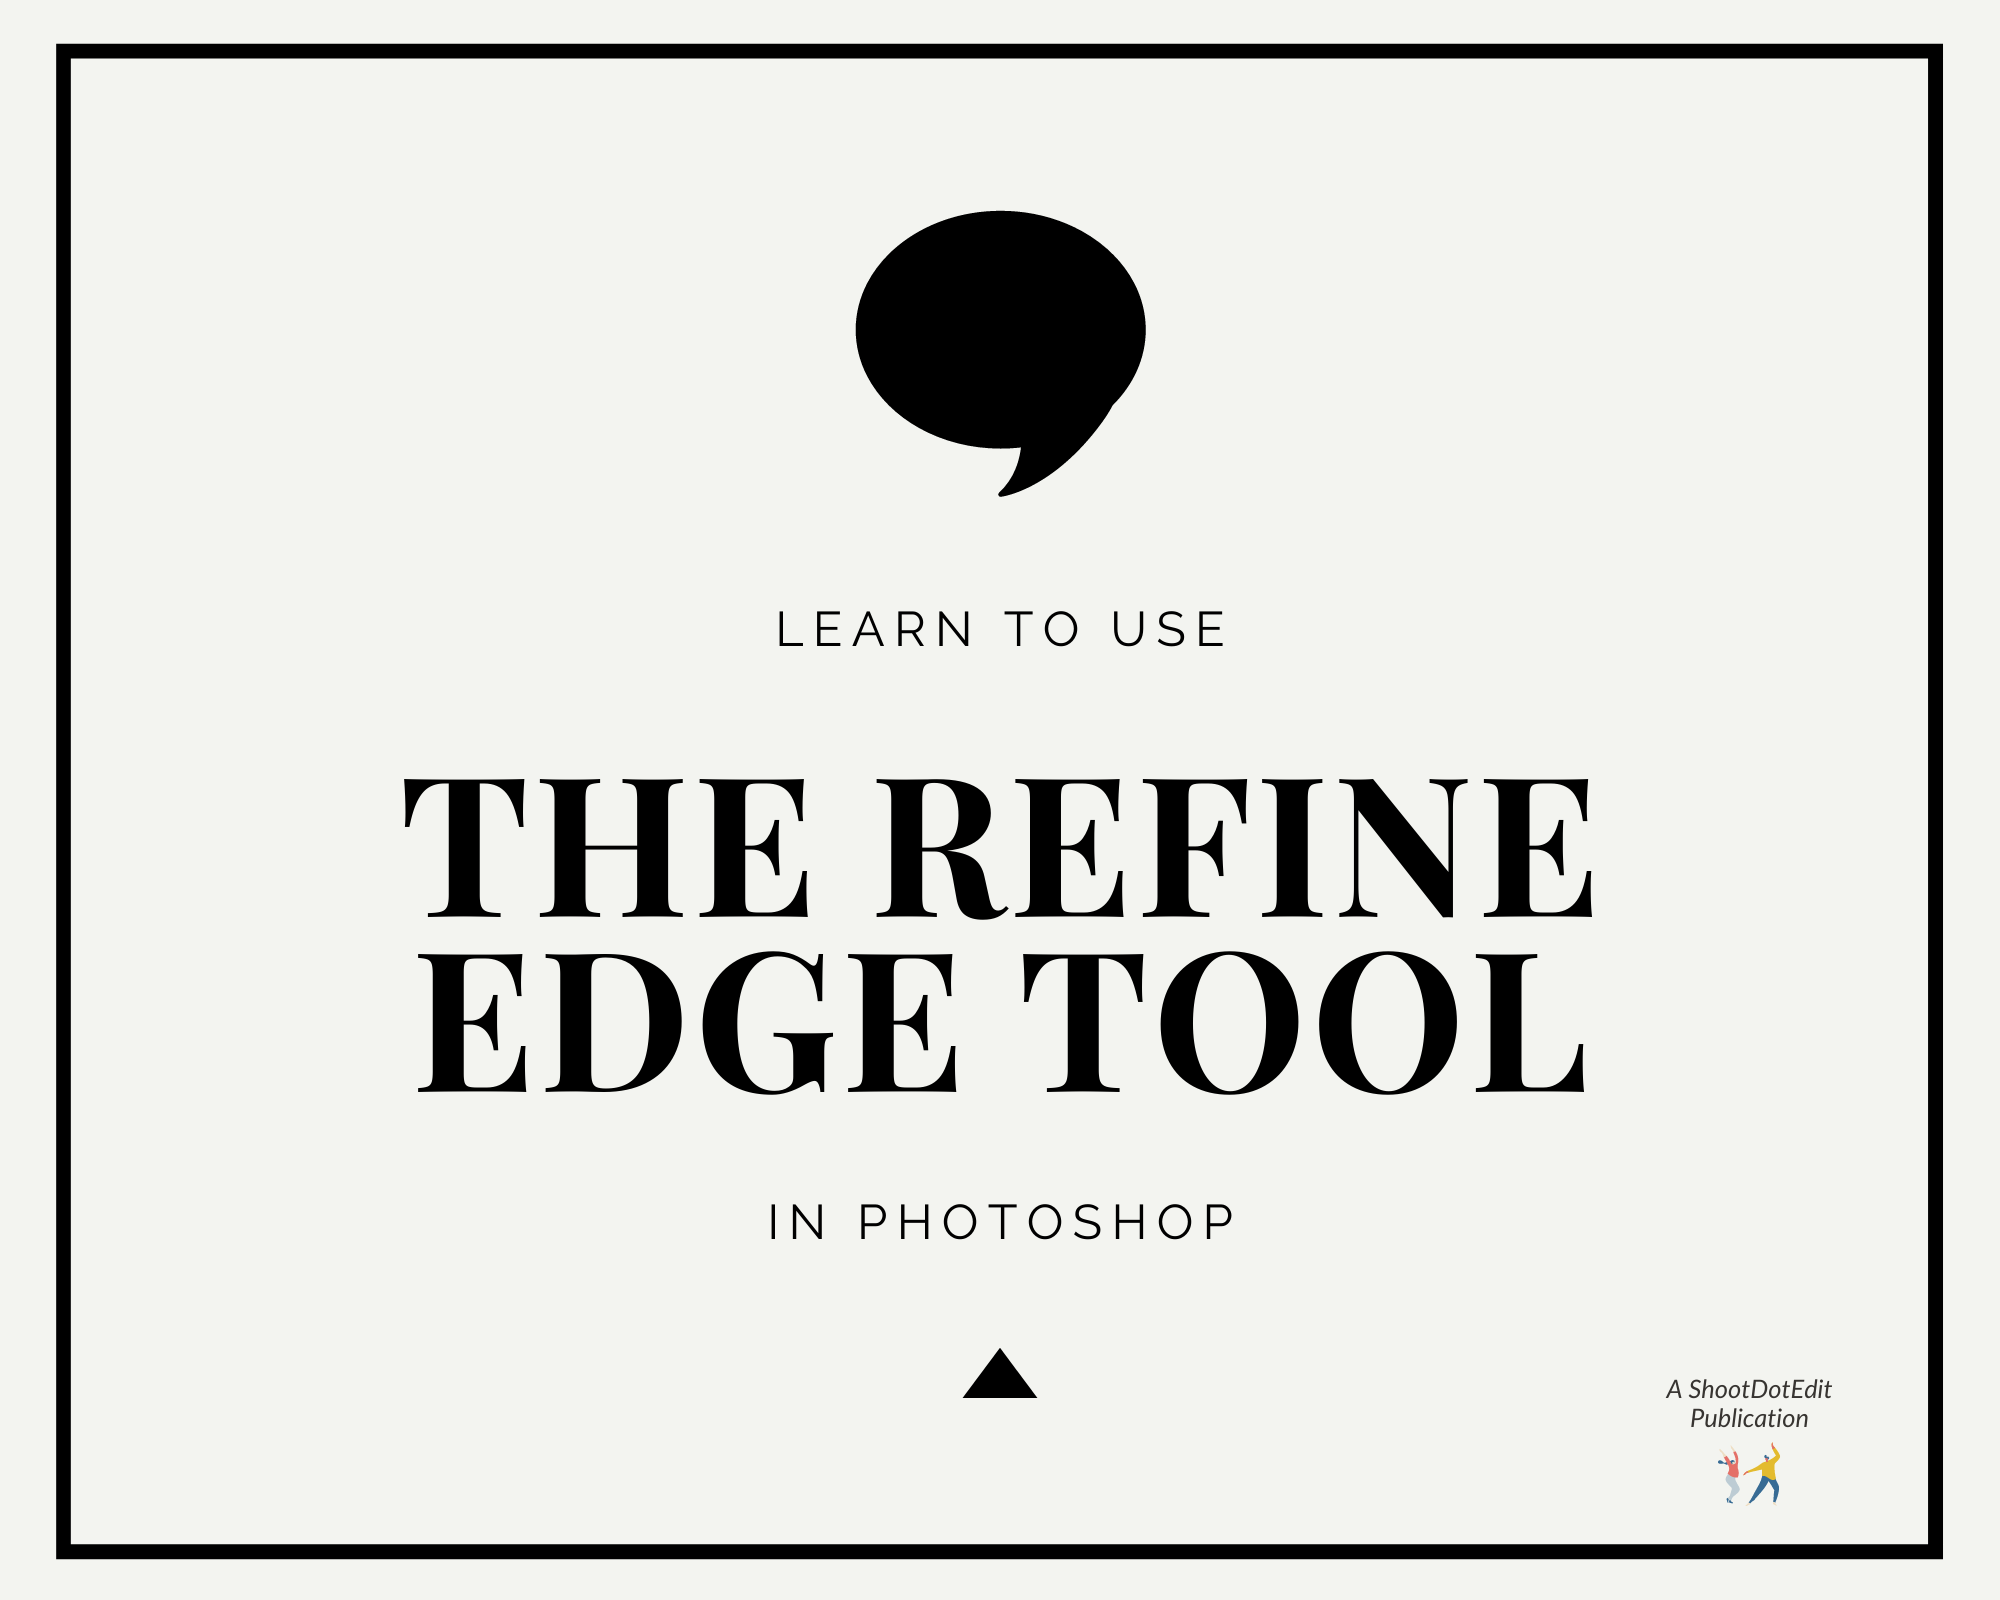 Infographic stating learn to use the refine edge tool in Photoshop